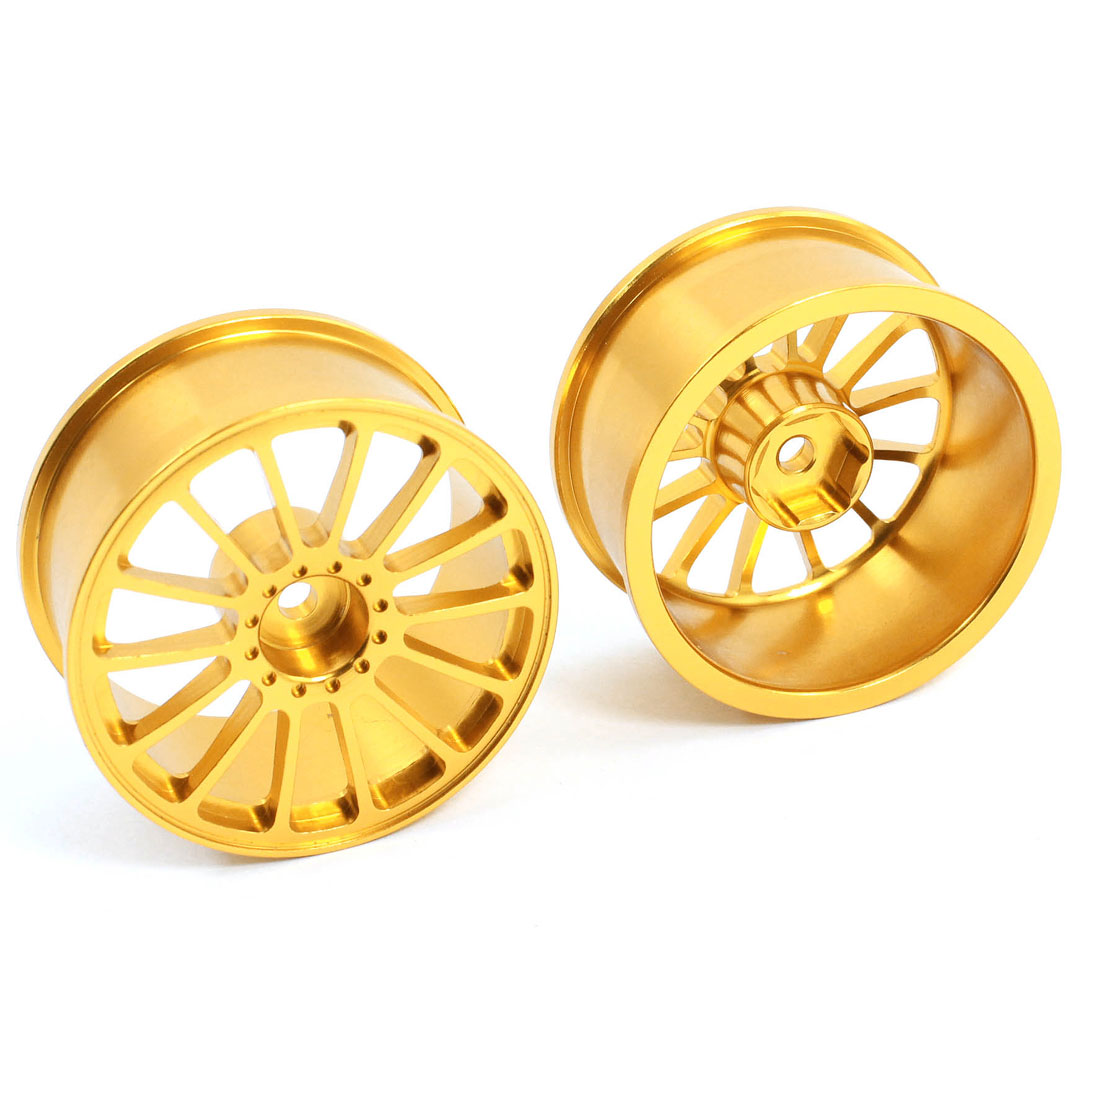 2 Pcs 1:10 RC Model Flat Racing Car Truck Aluminum Alloy Drift Wheel Rim 48mm Dia